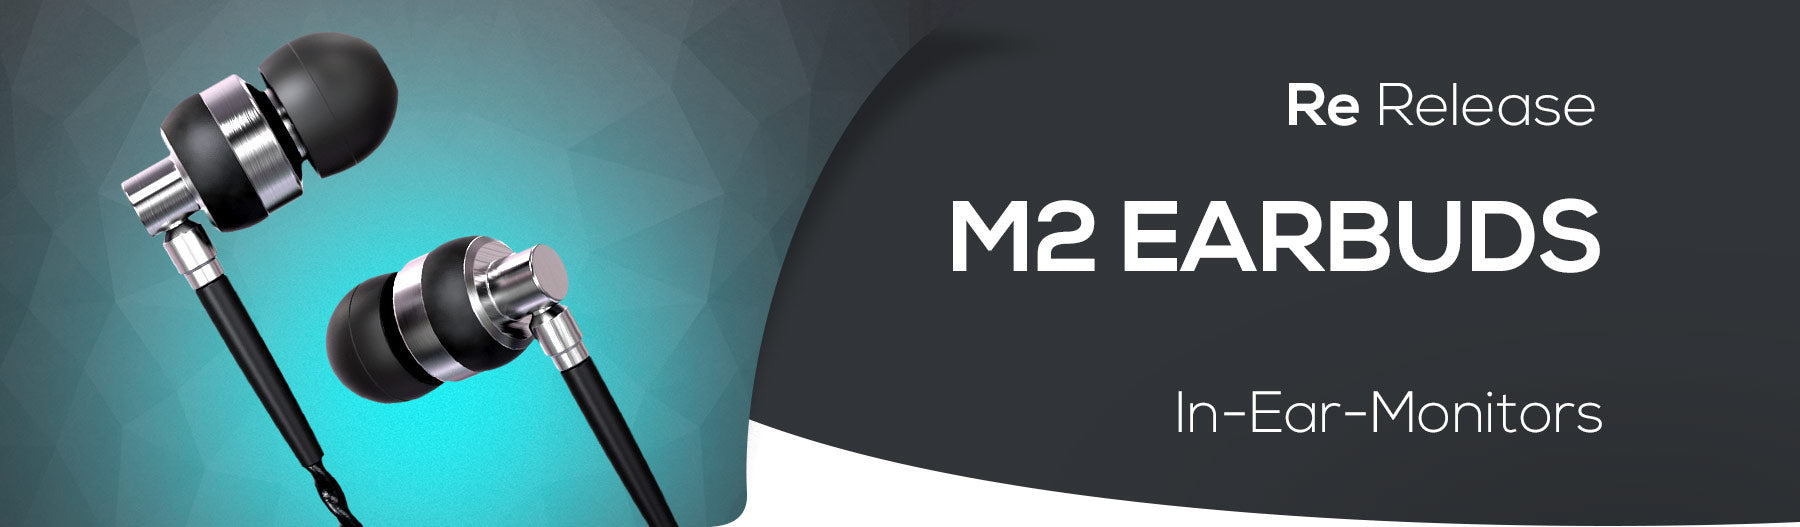 M2 Earbuds - Return of a Classic